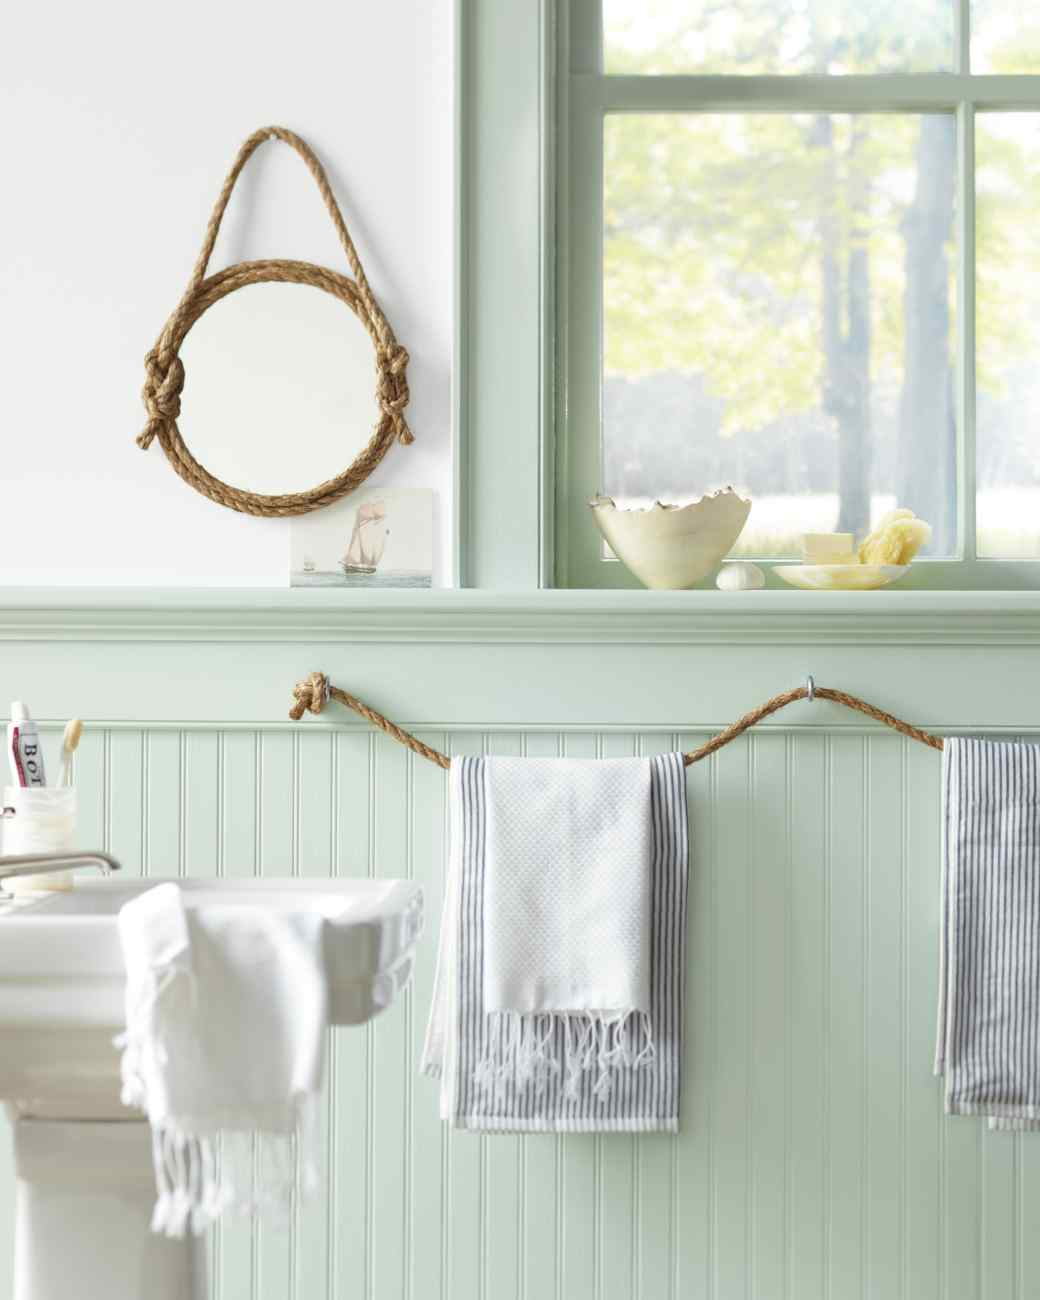 8 Awesome DIY Towel Holders to Spruce Up Your Bath